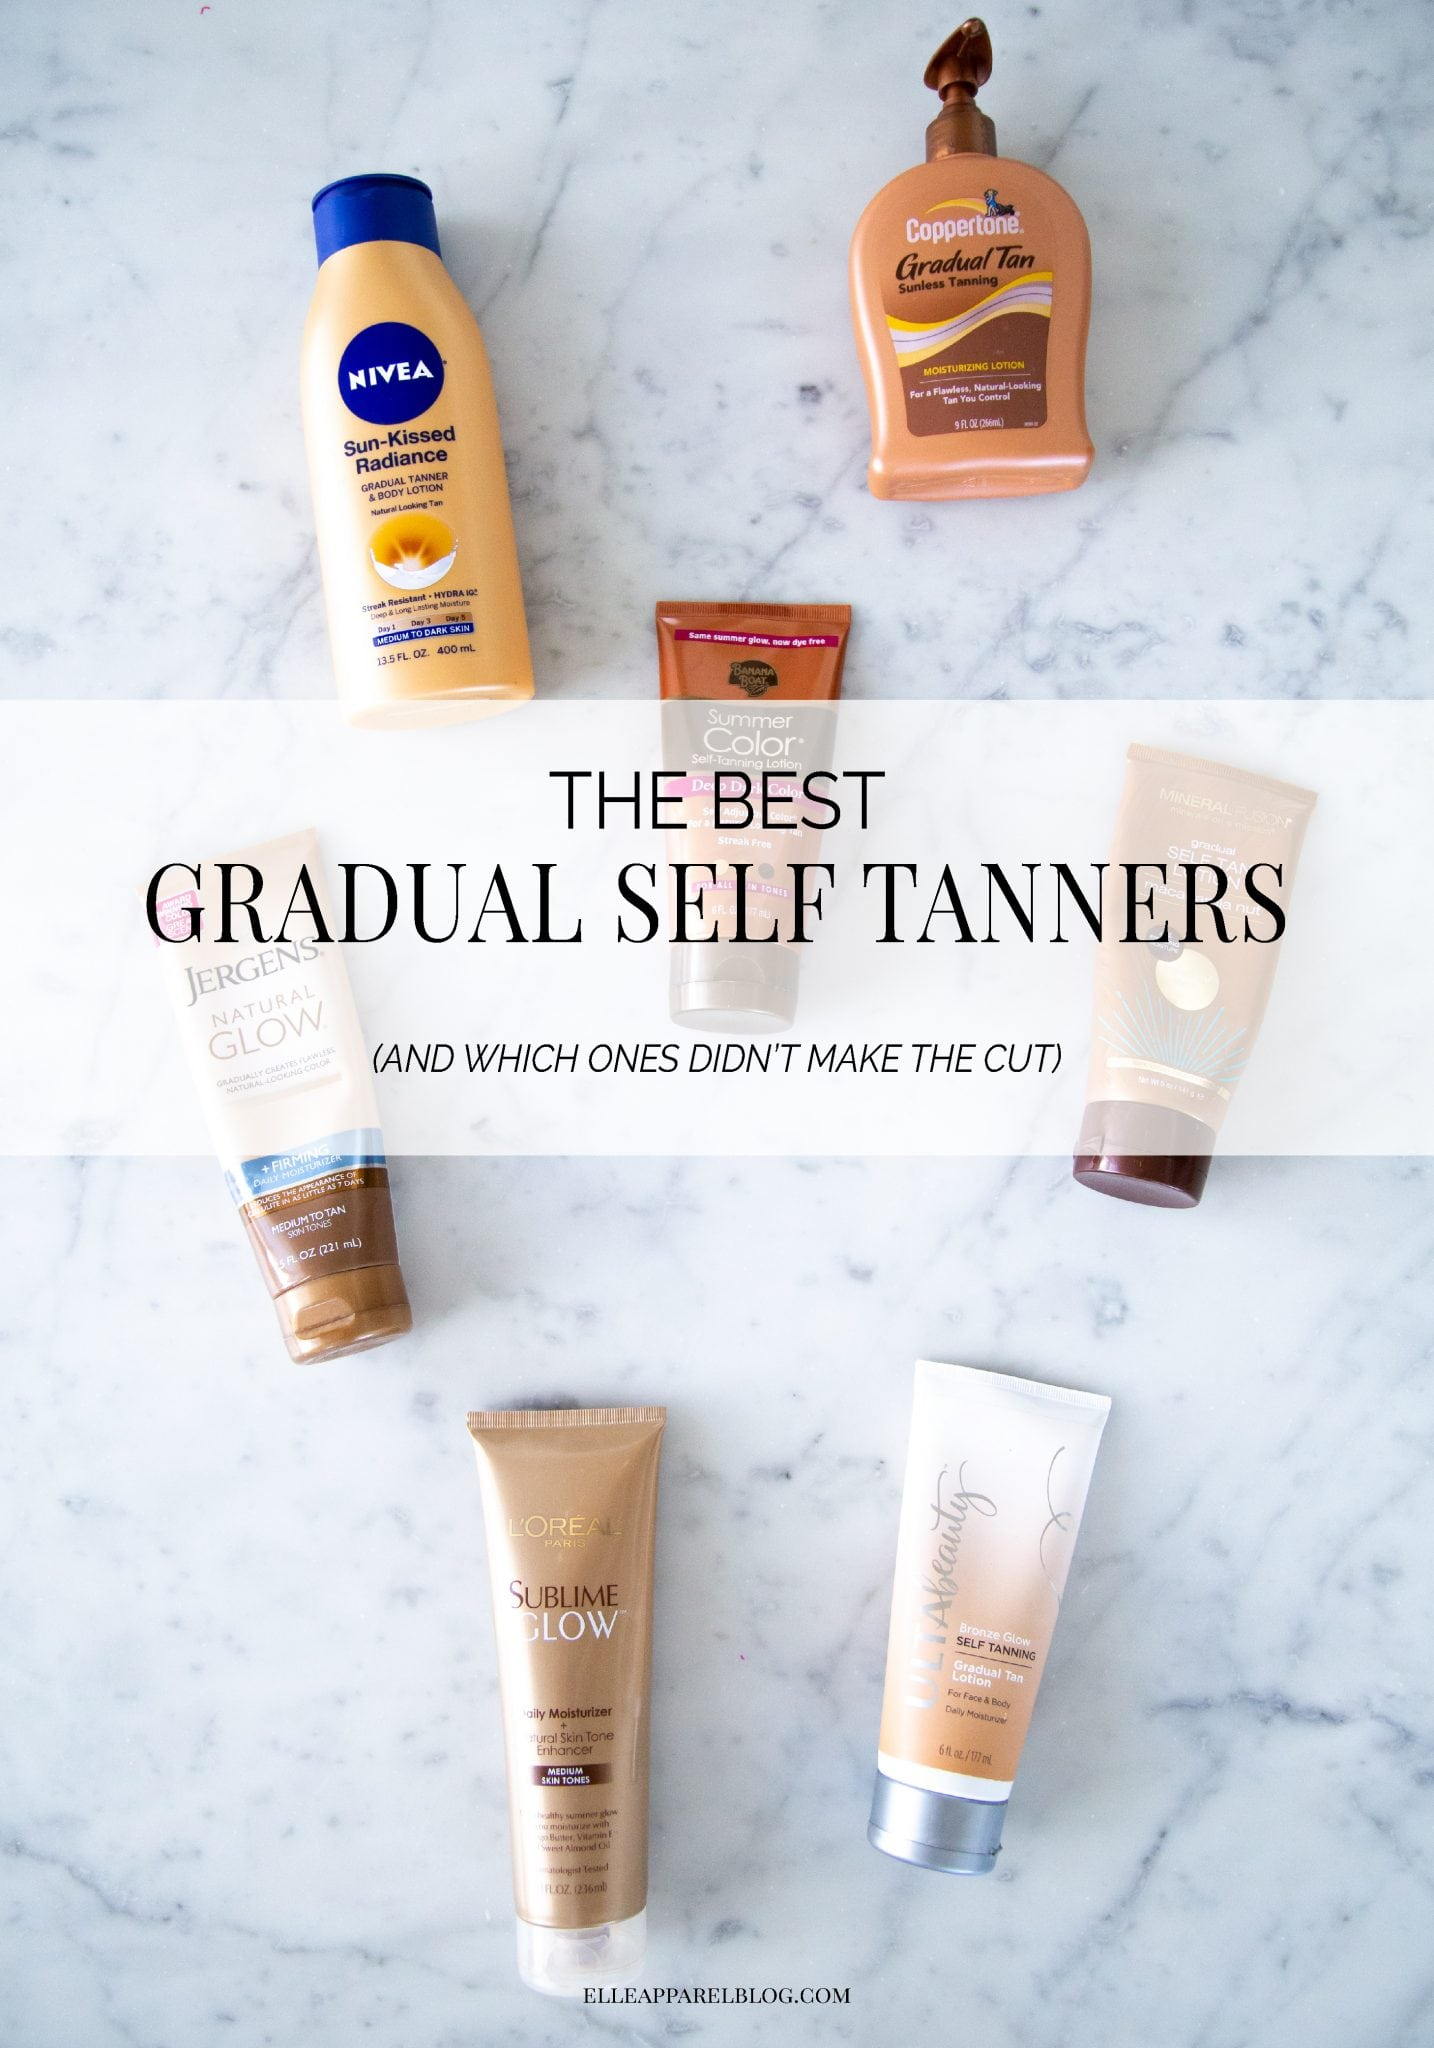 The best gradual self tanners (and the ones to avoid!) | Elle Apparel Blog